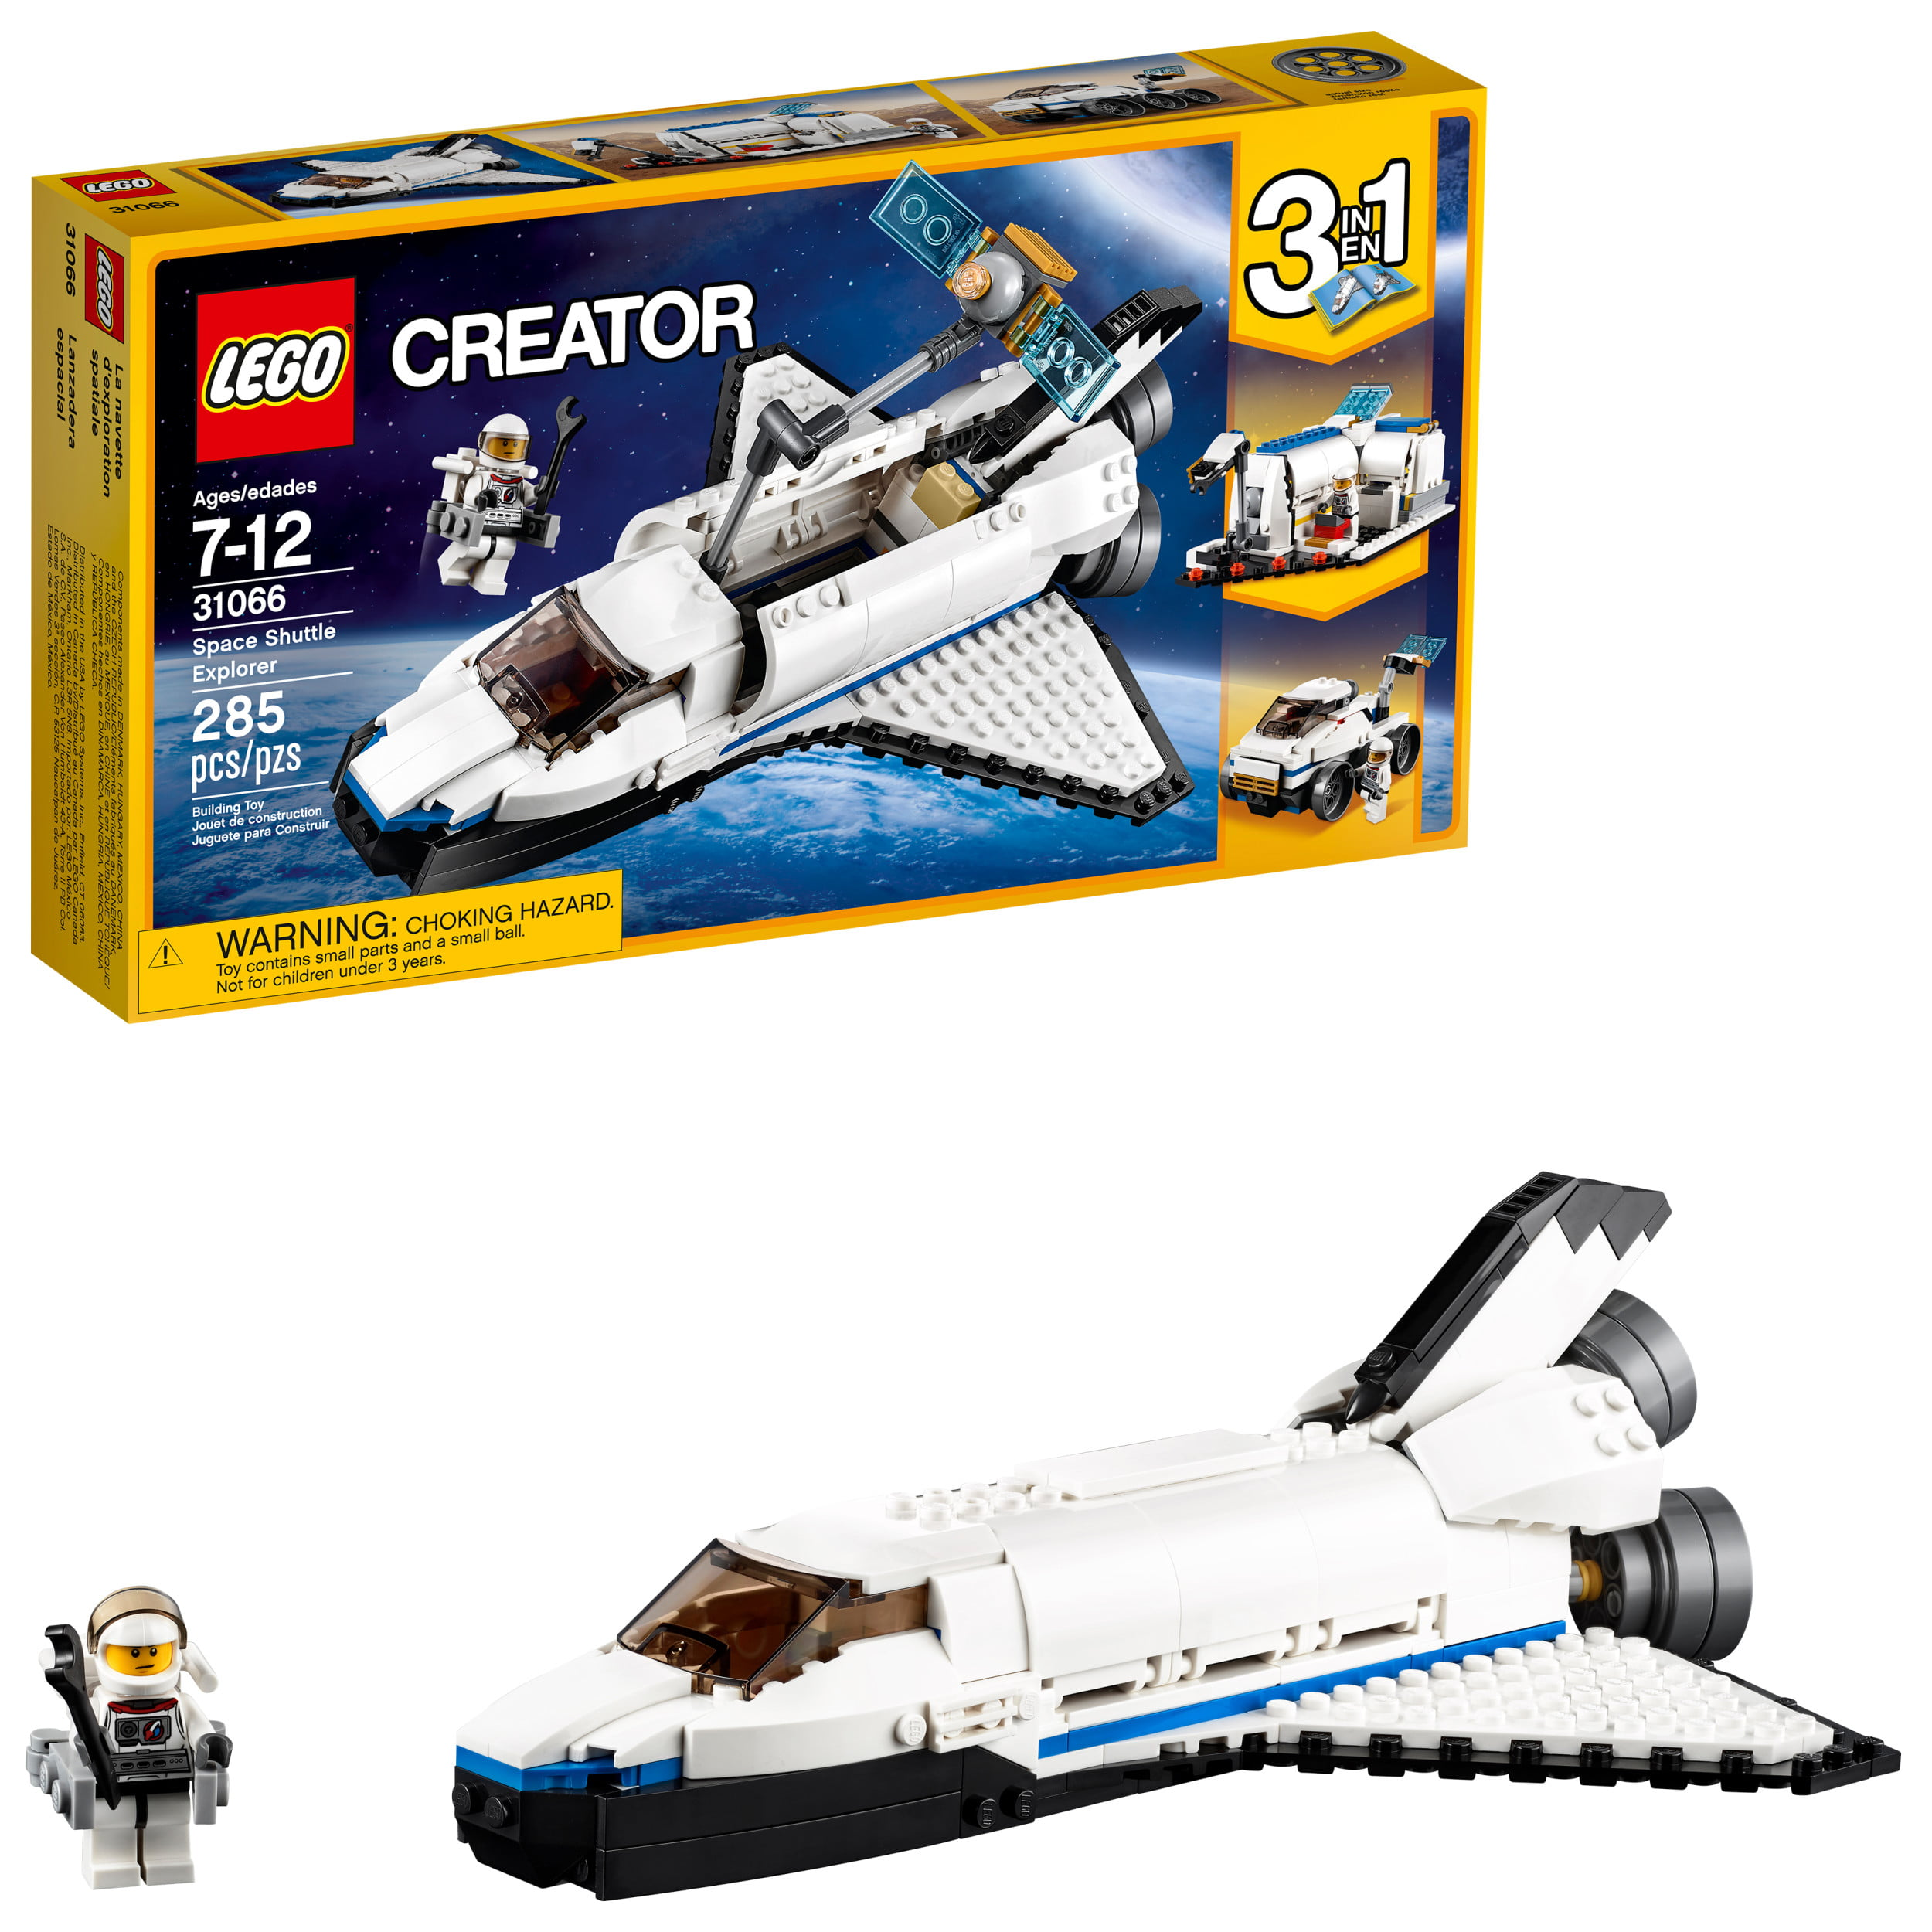 Lego Creator Space Shuttle Explorer 31066 Building Kit (285 Piece) by LEGO System Inc